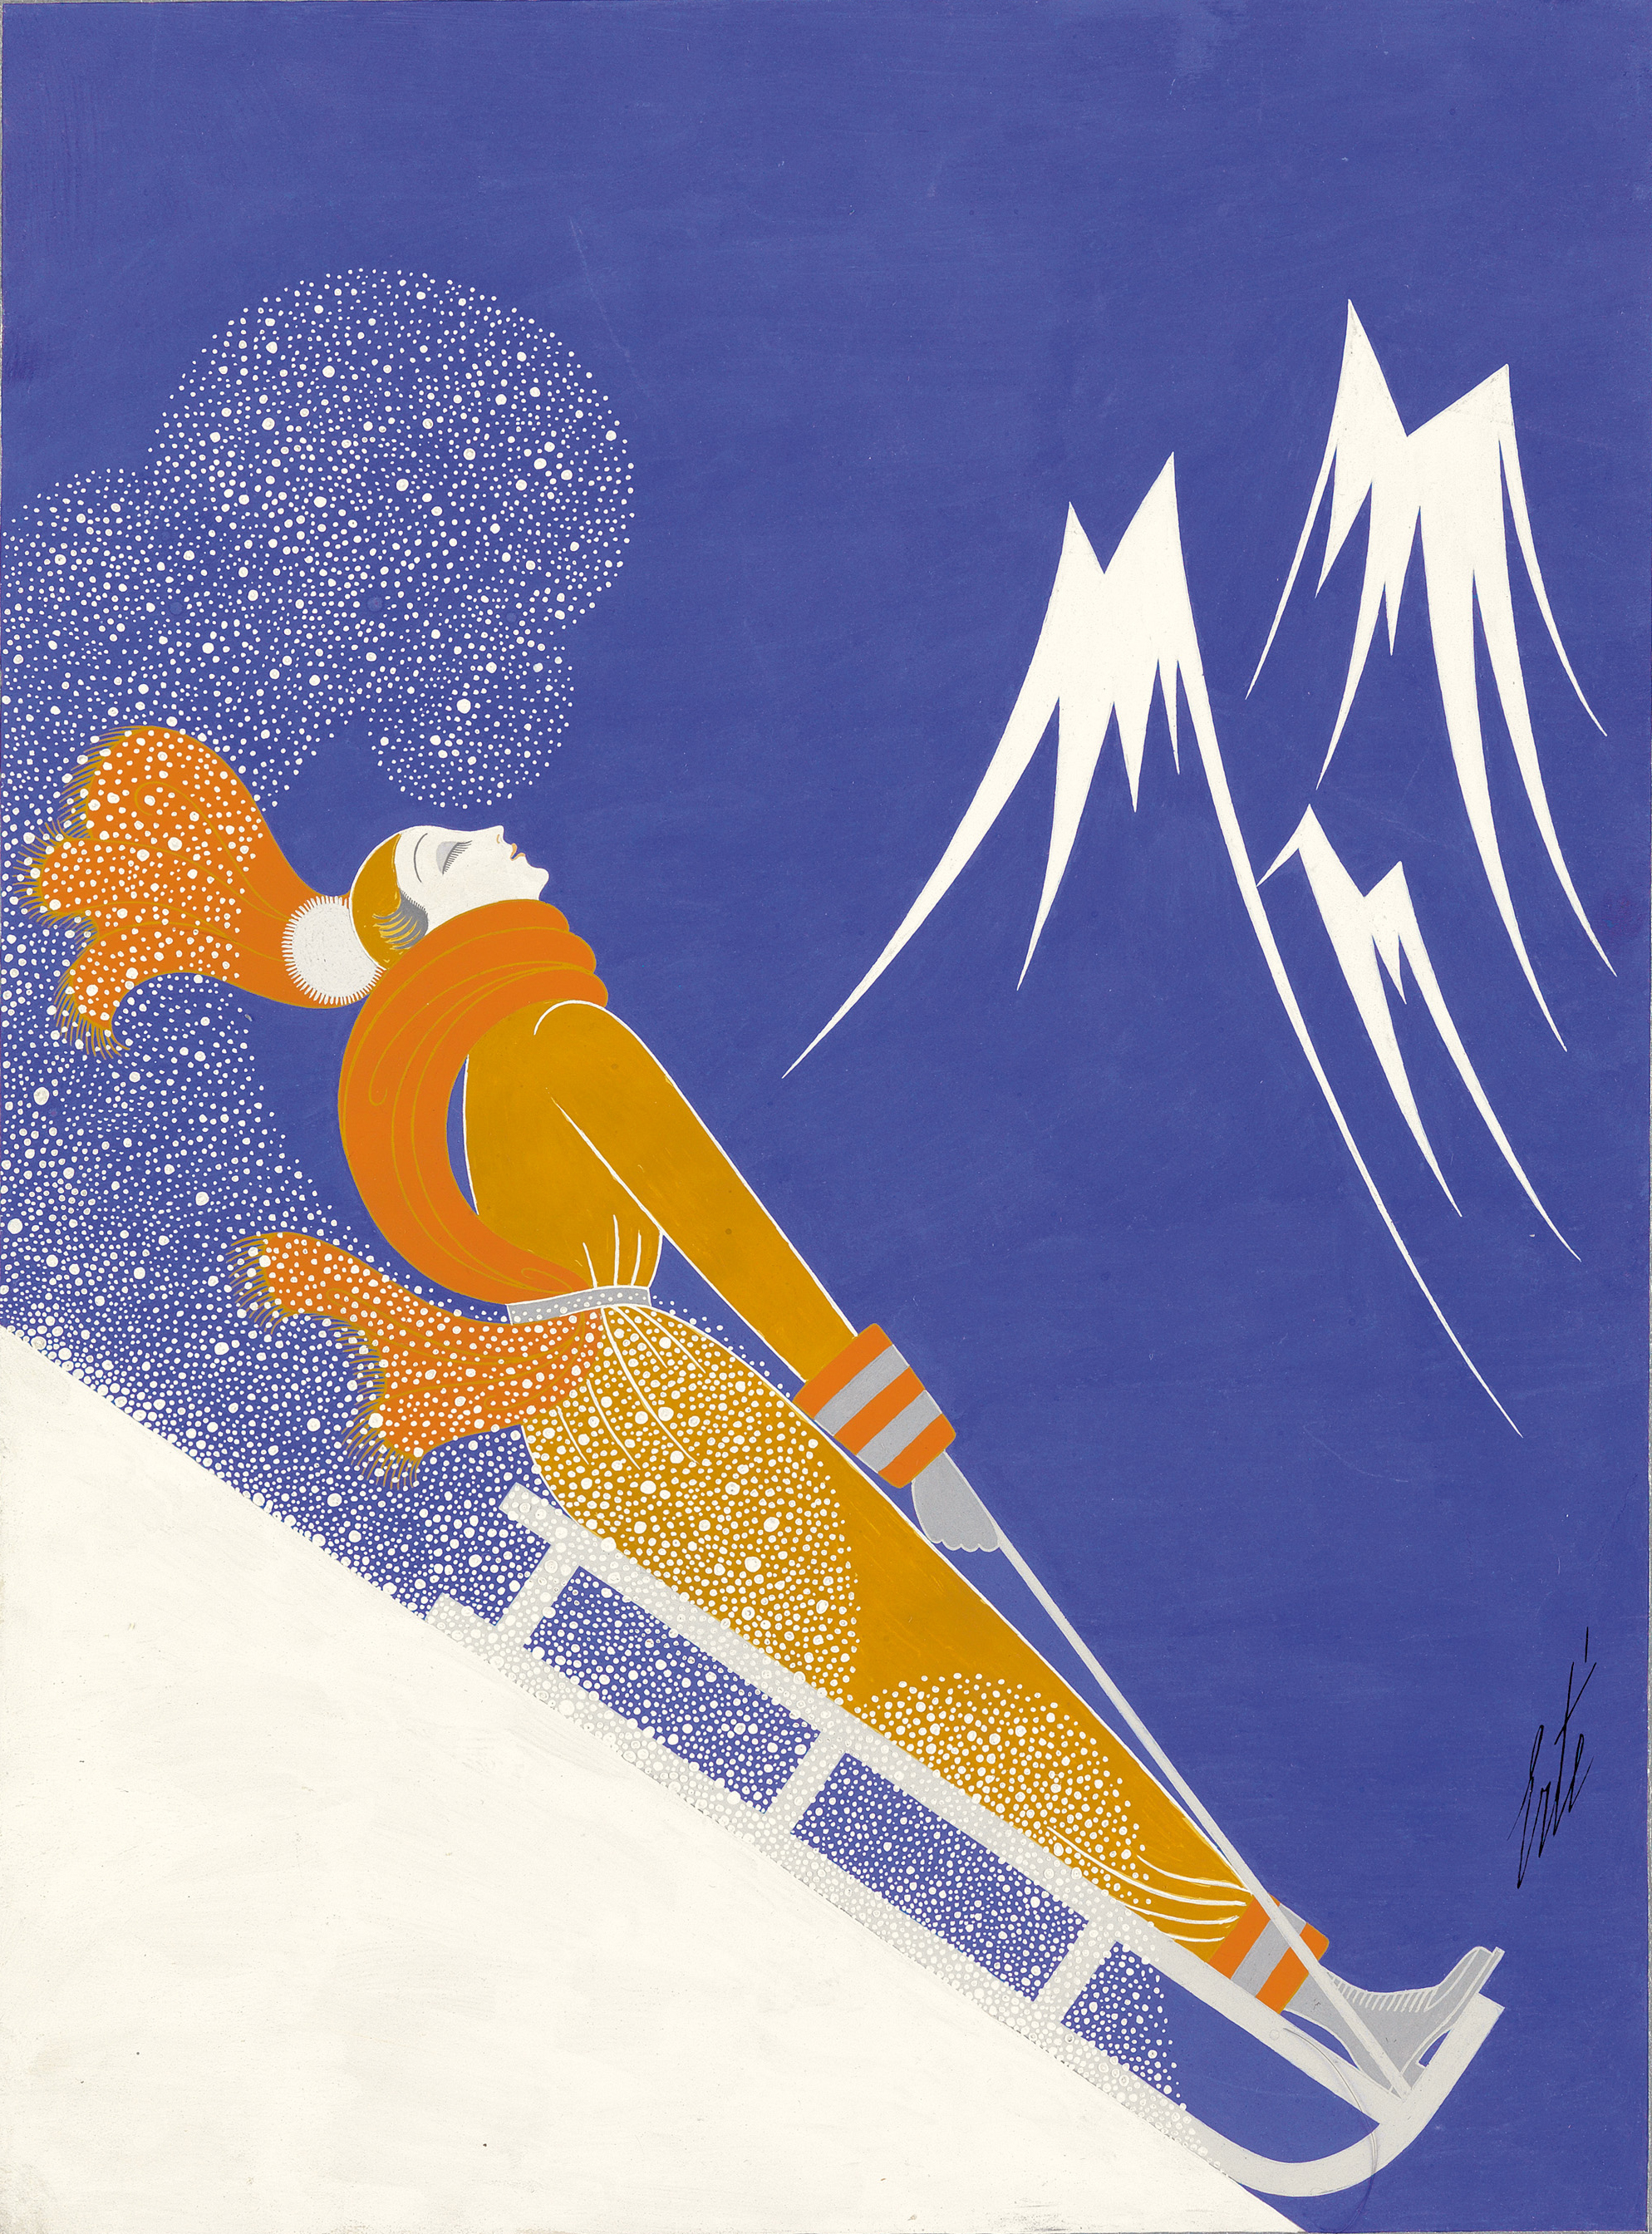 An original gouache on board, Sports d'Hiver, created by Erté for the February 1933 cover of Harper's Bazaar.